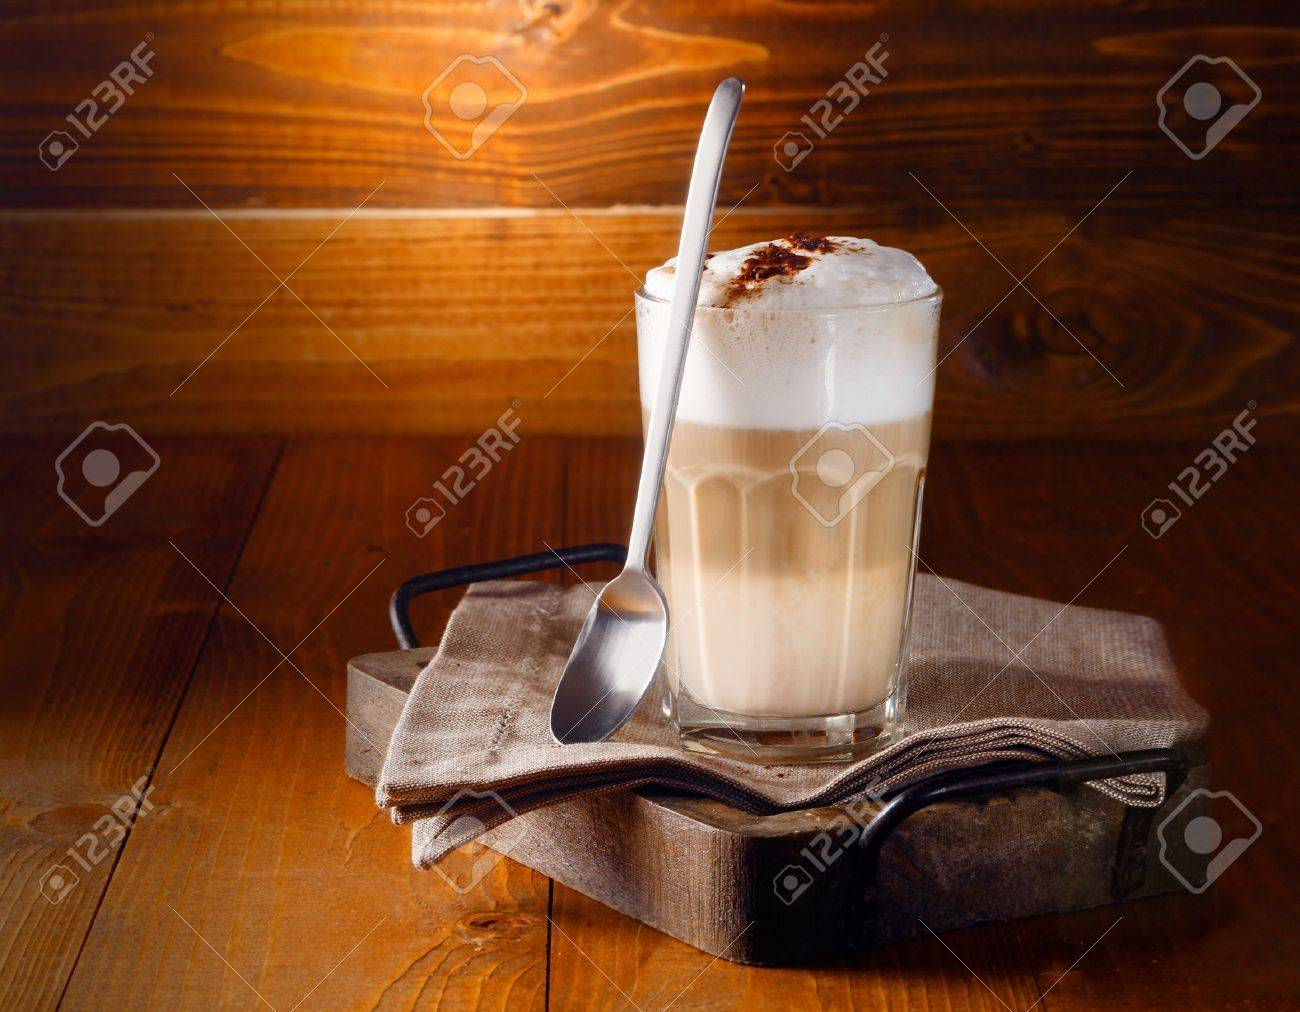 Delicious layered cappuccino or latte macchiato coffee served in a long glass with a spoon against a rustic wooden background with copyspace Stock Photo - 17853271